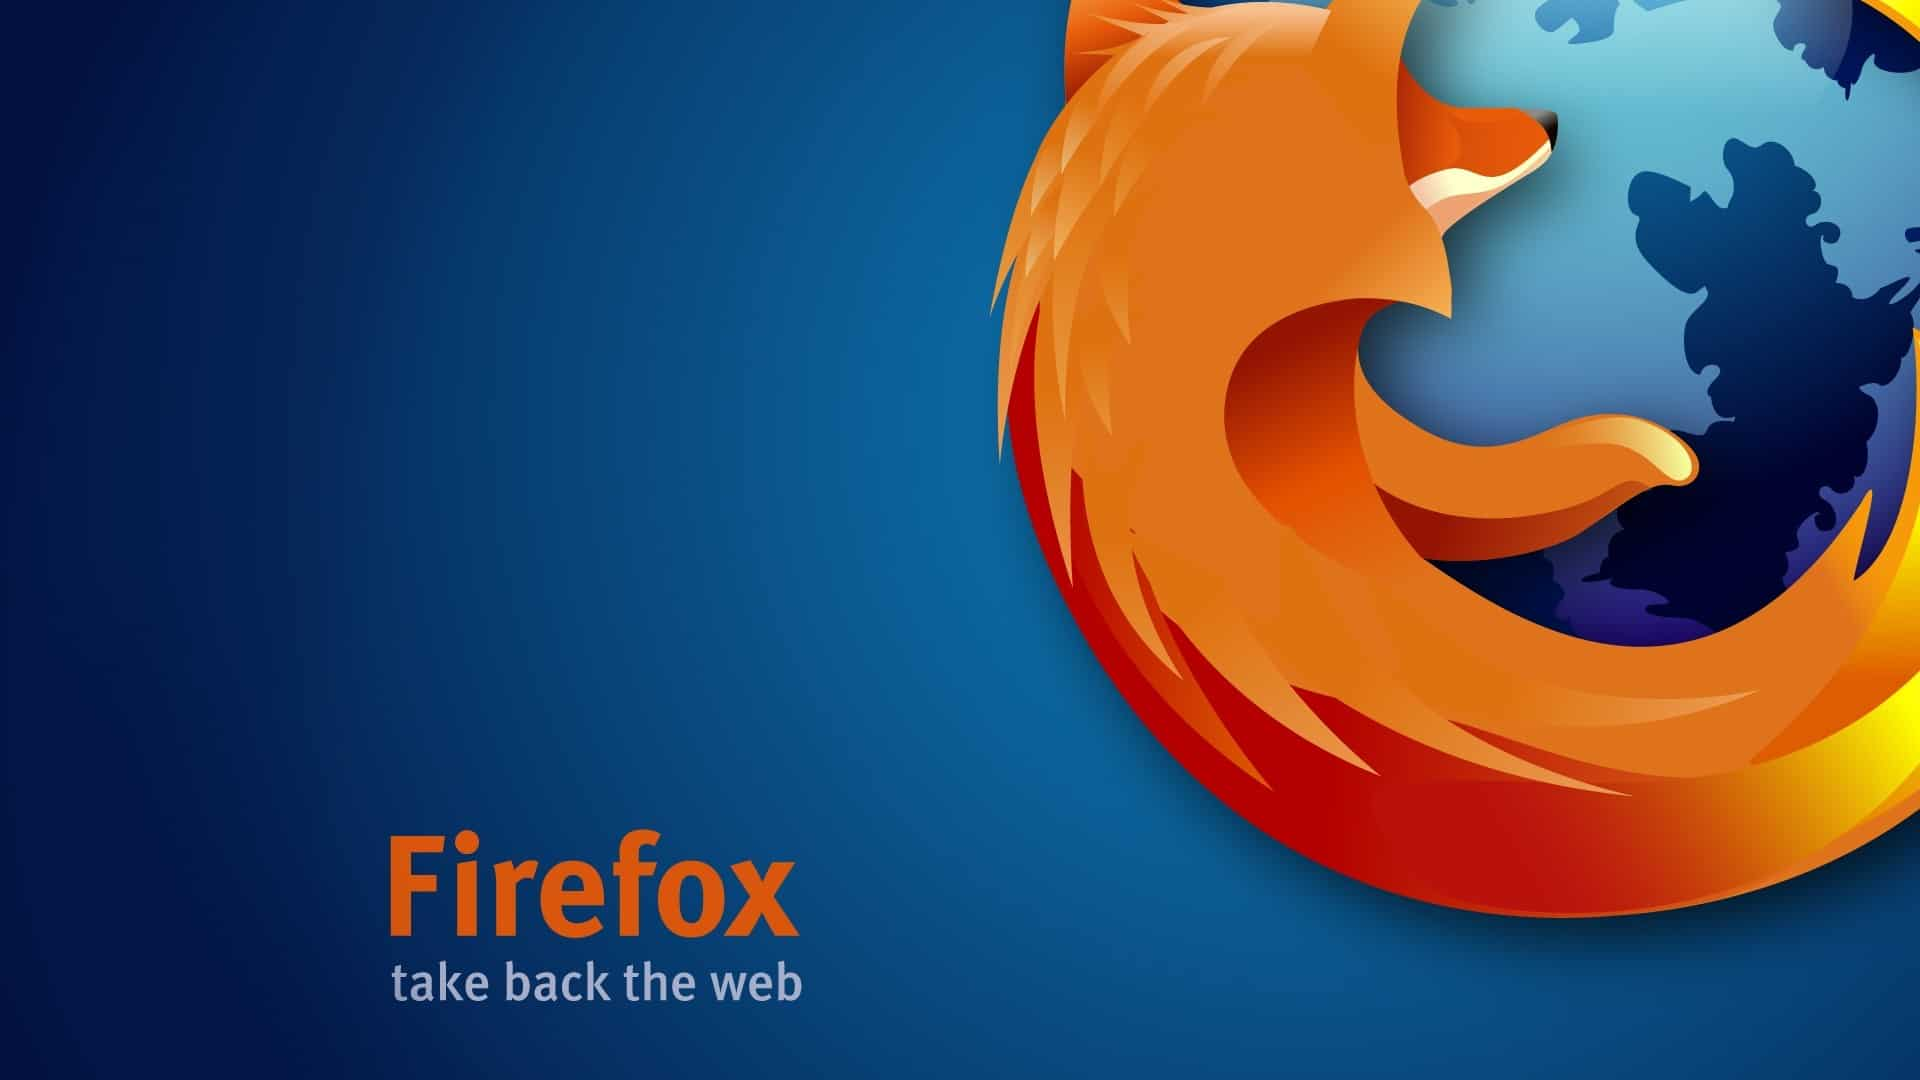 Update to Mozilla Firefox Version 39 0 3 to Avoid Getting Hacked